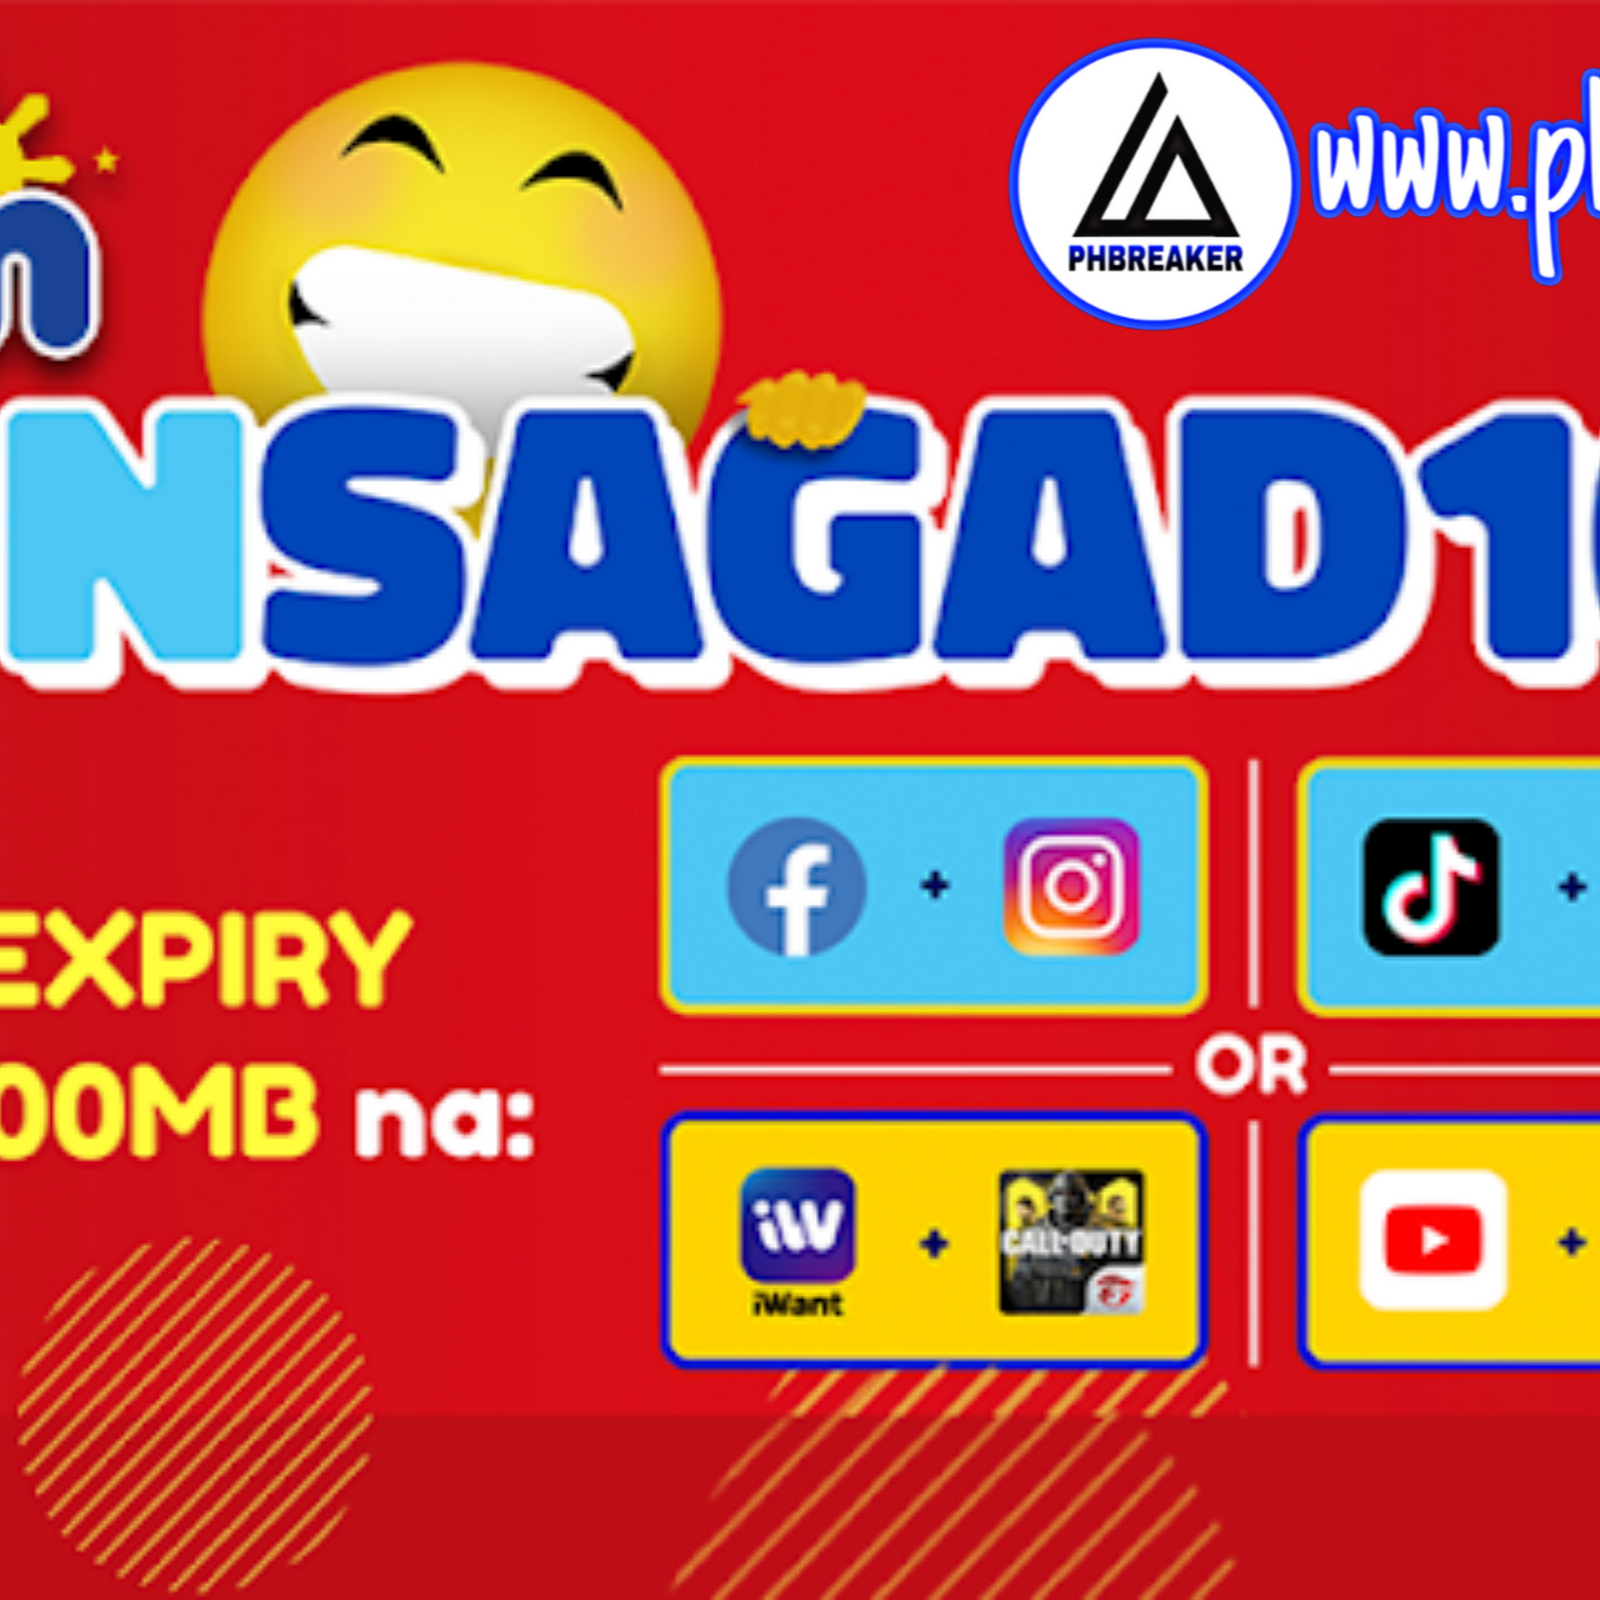 TM FUNSAGAD Promos For ₱10: 400MB Data No Expiration